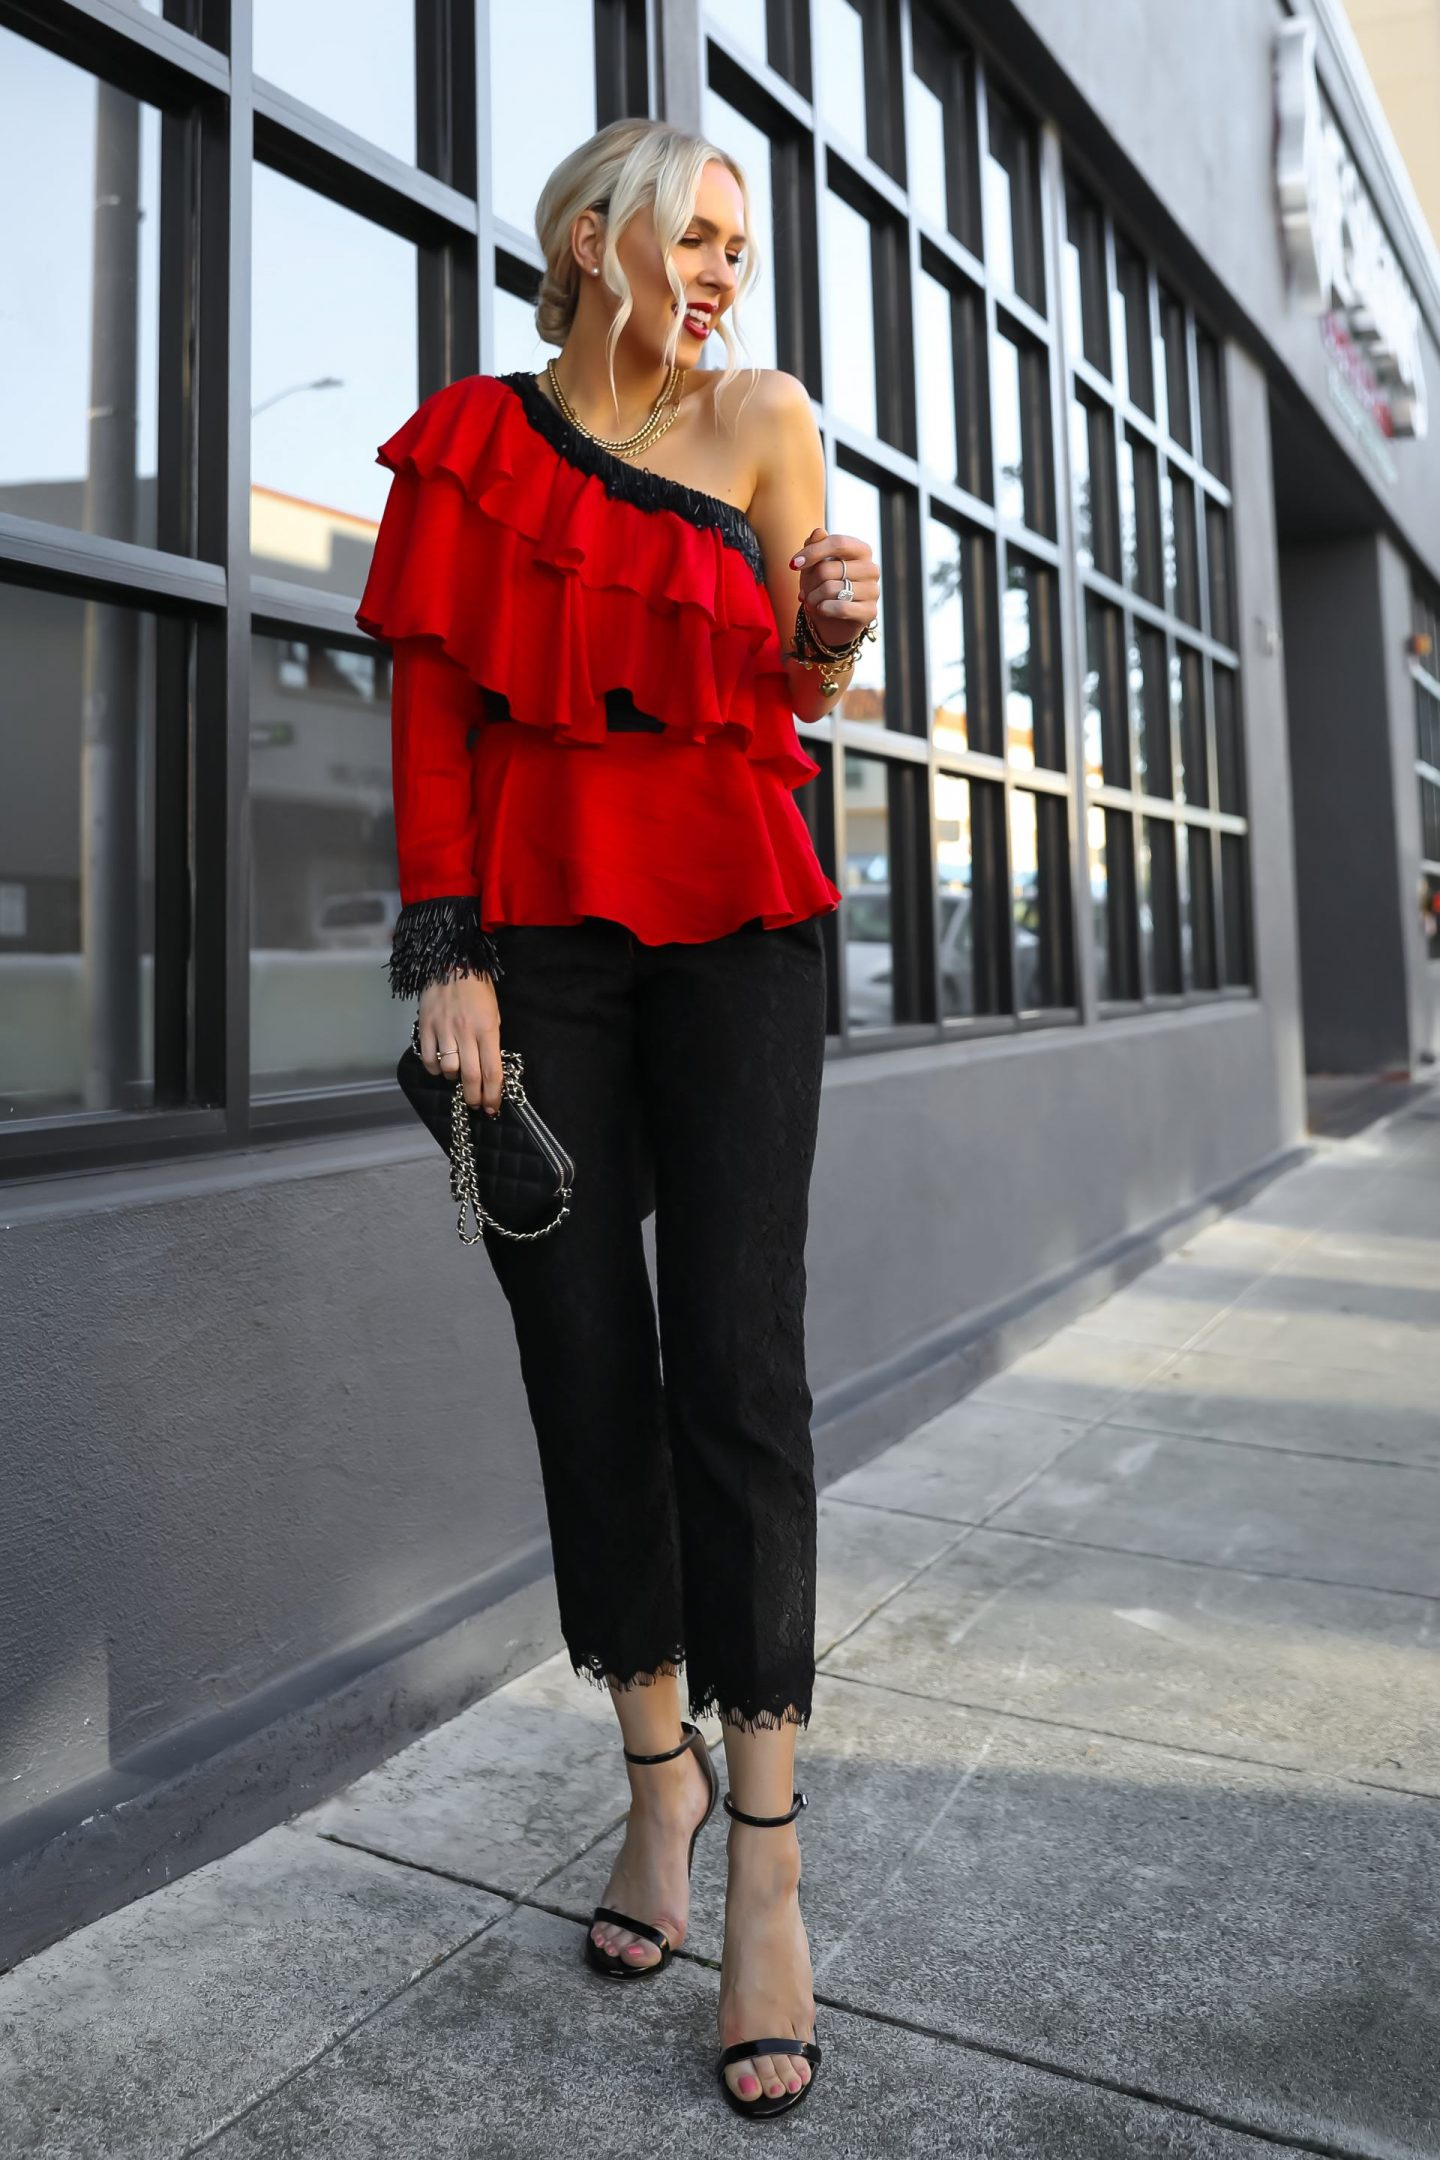 Valentine's Day style inspiration with gold and pearl best accessories from Victoria Emerson BOGO sale. By San Francisco fashion blogger Lombard & Fifth.